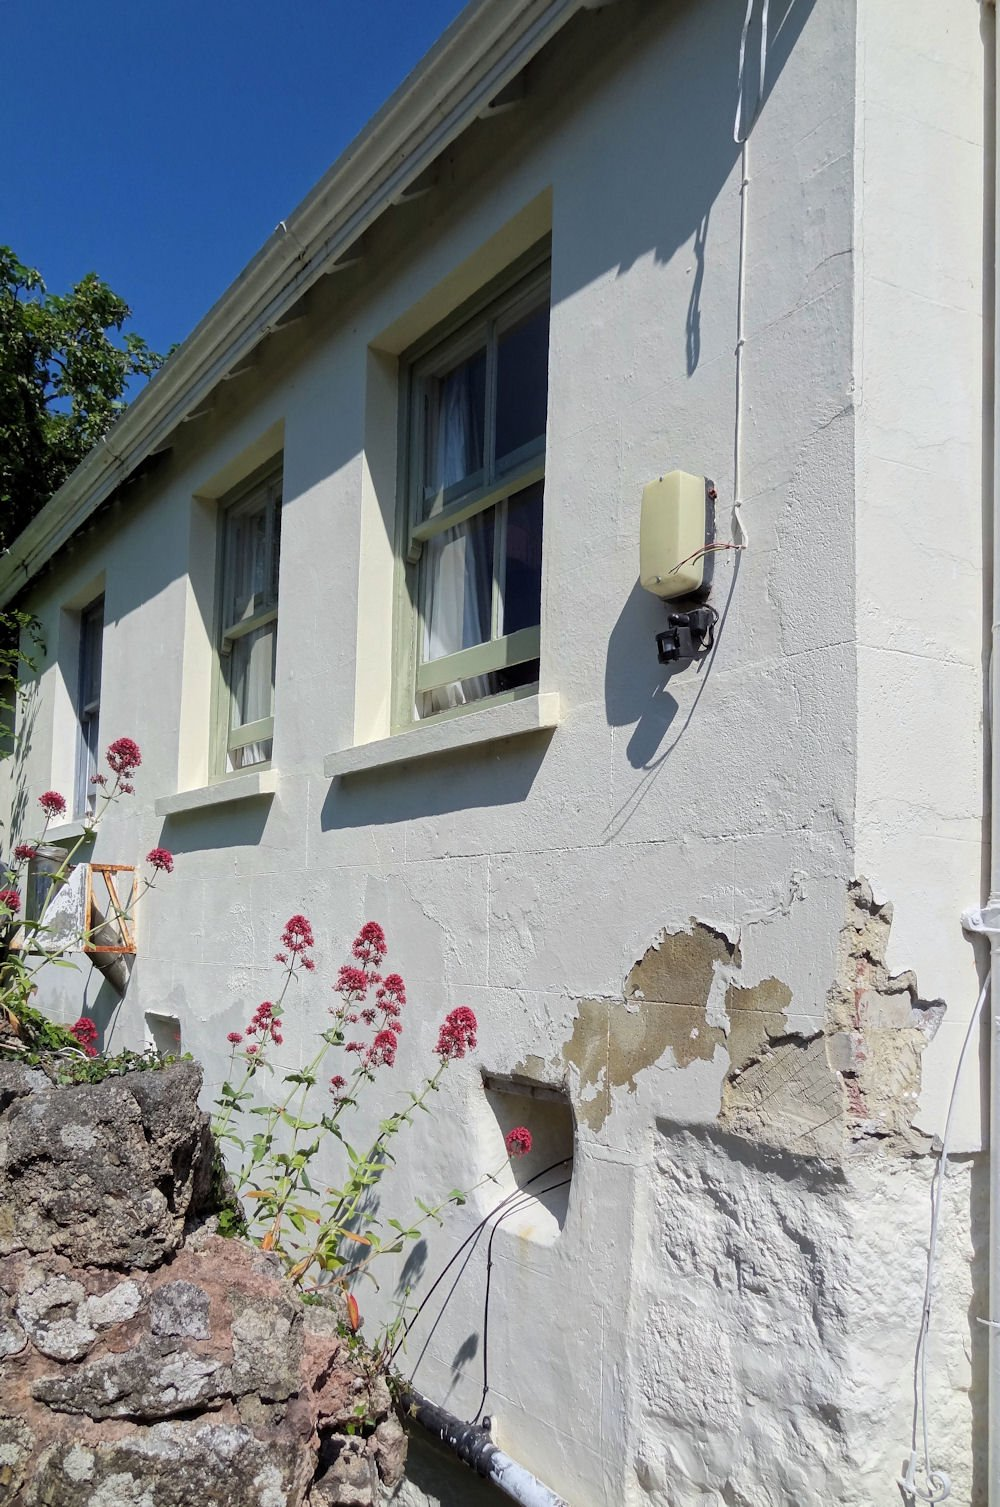 Damp cement rendered and modern painted building